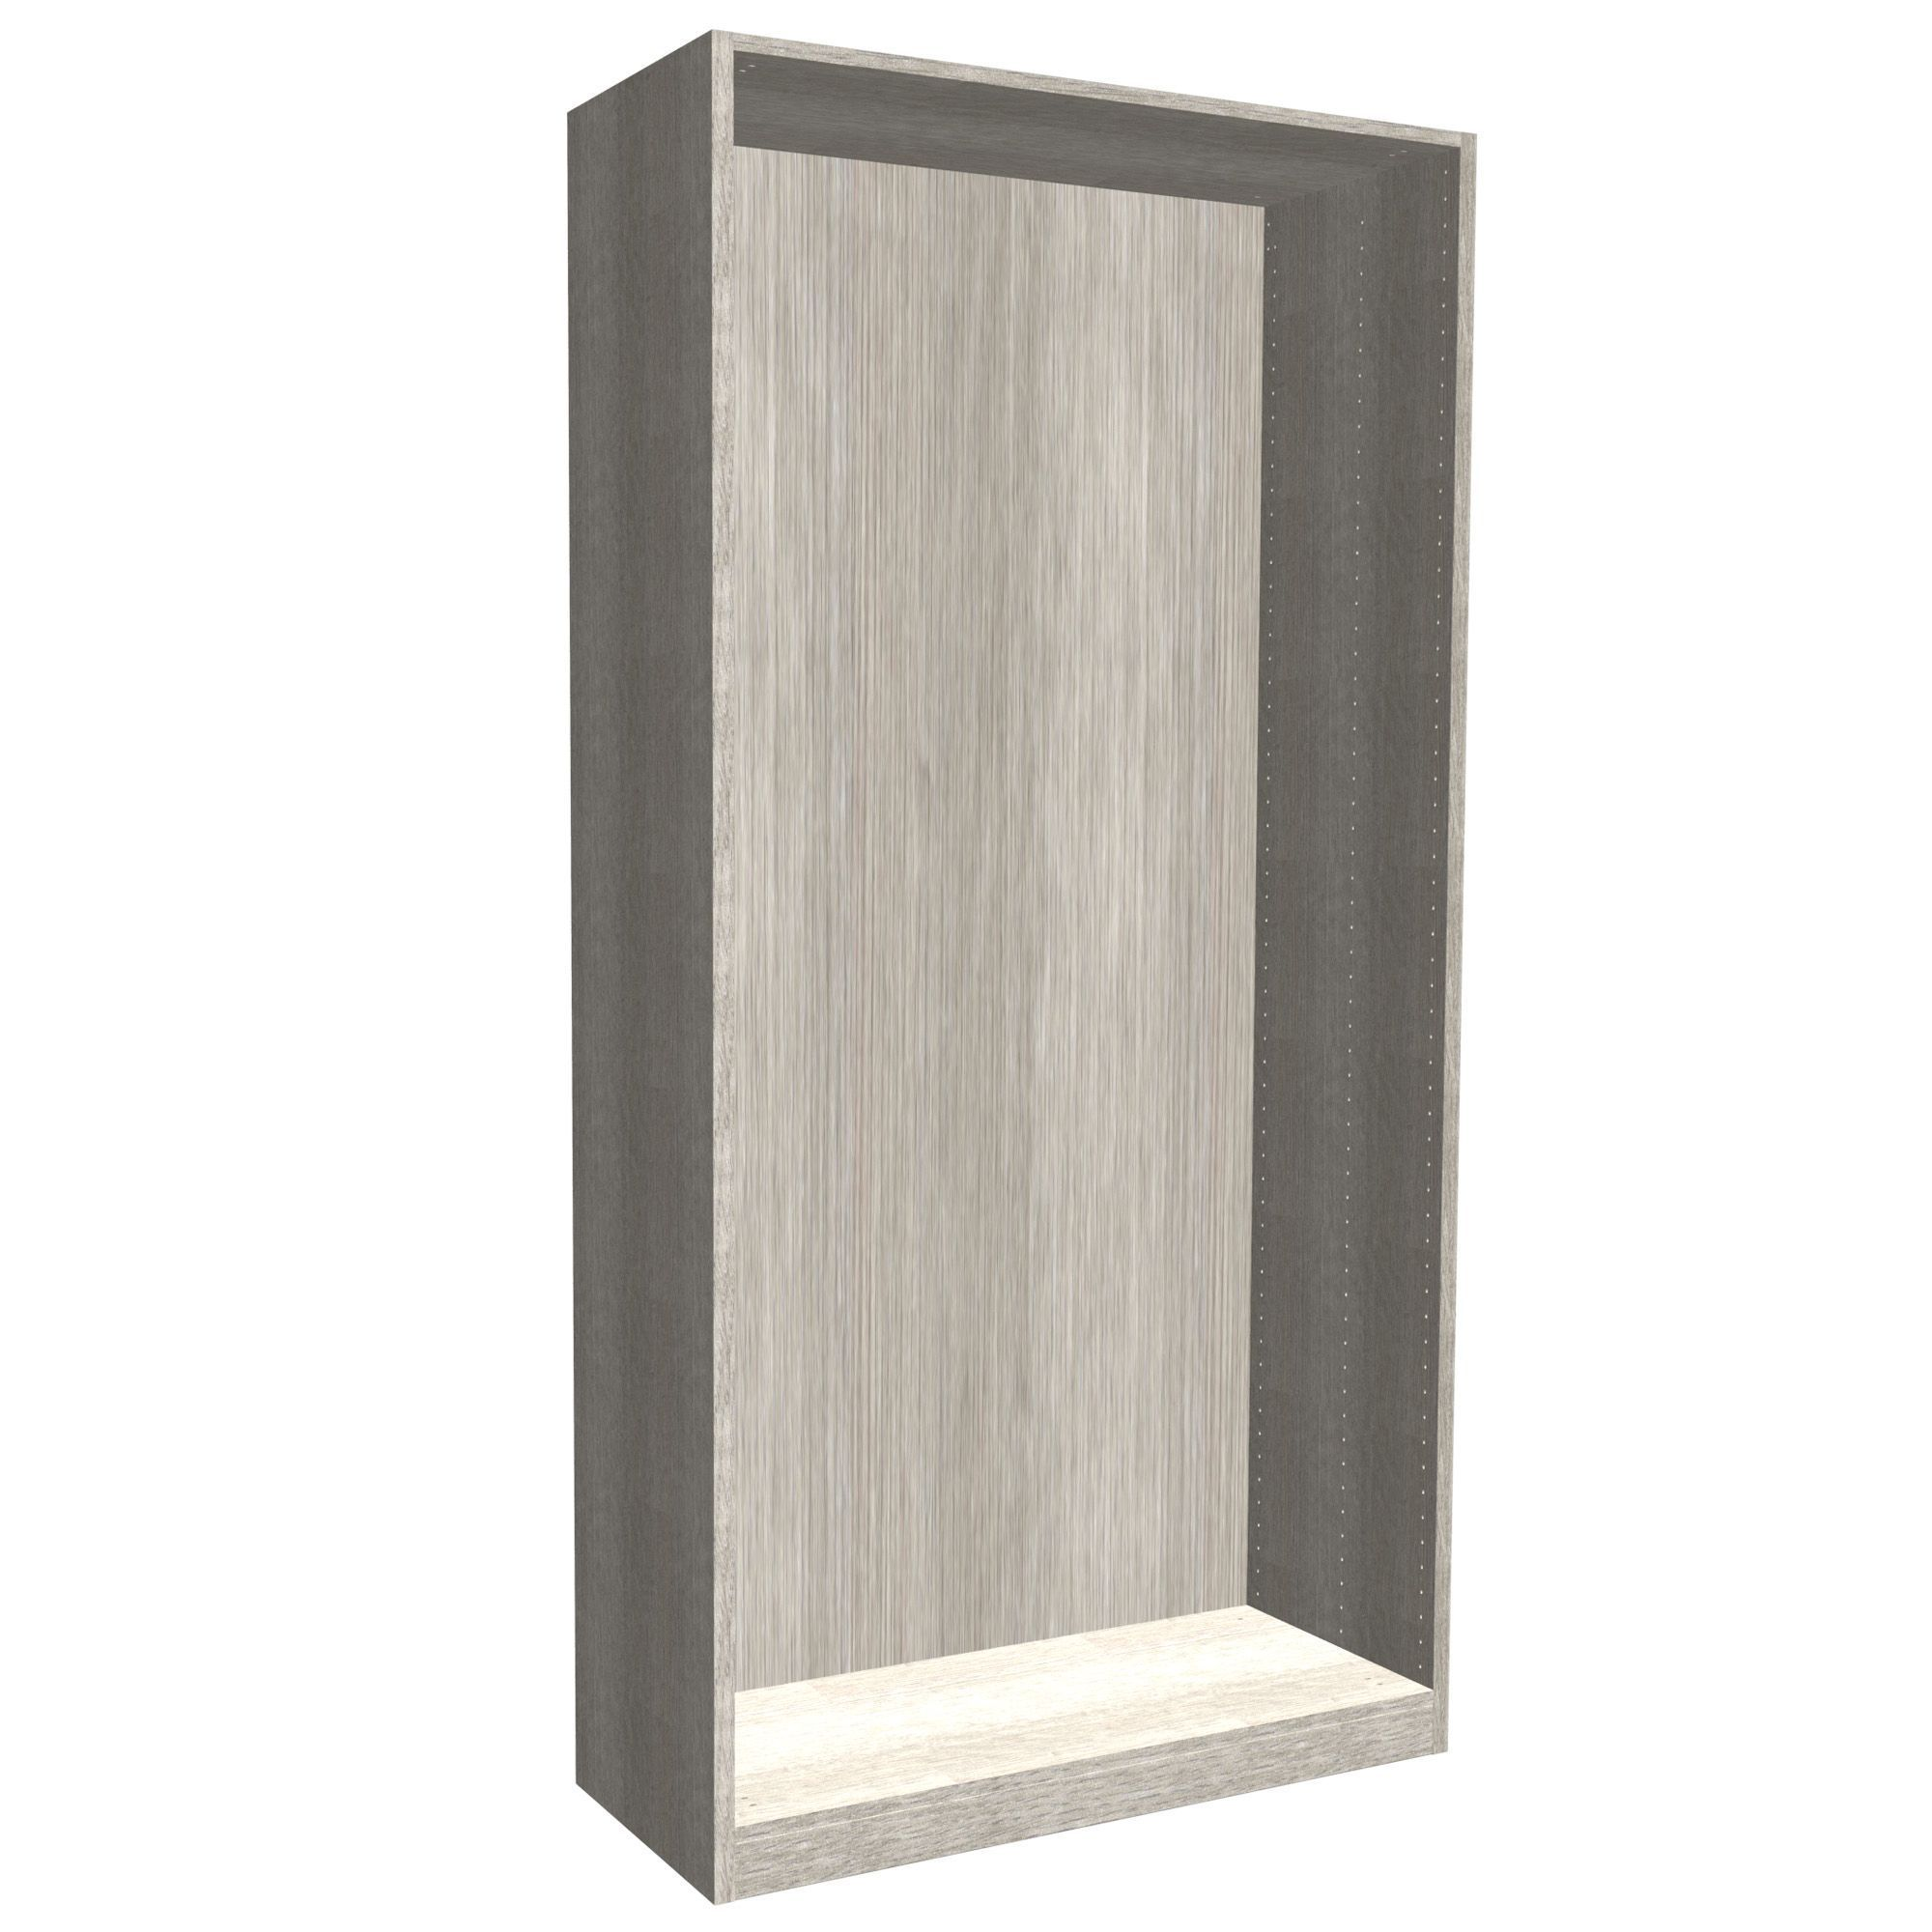 wardrobes highlight stripe grey sand gloss wardrobe door wellemobel sliding